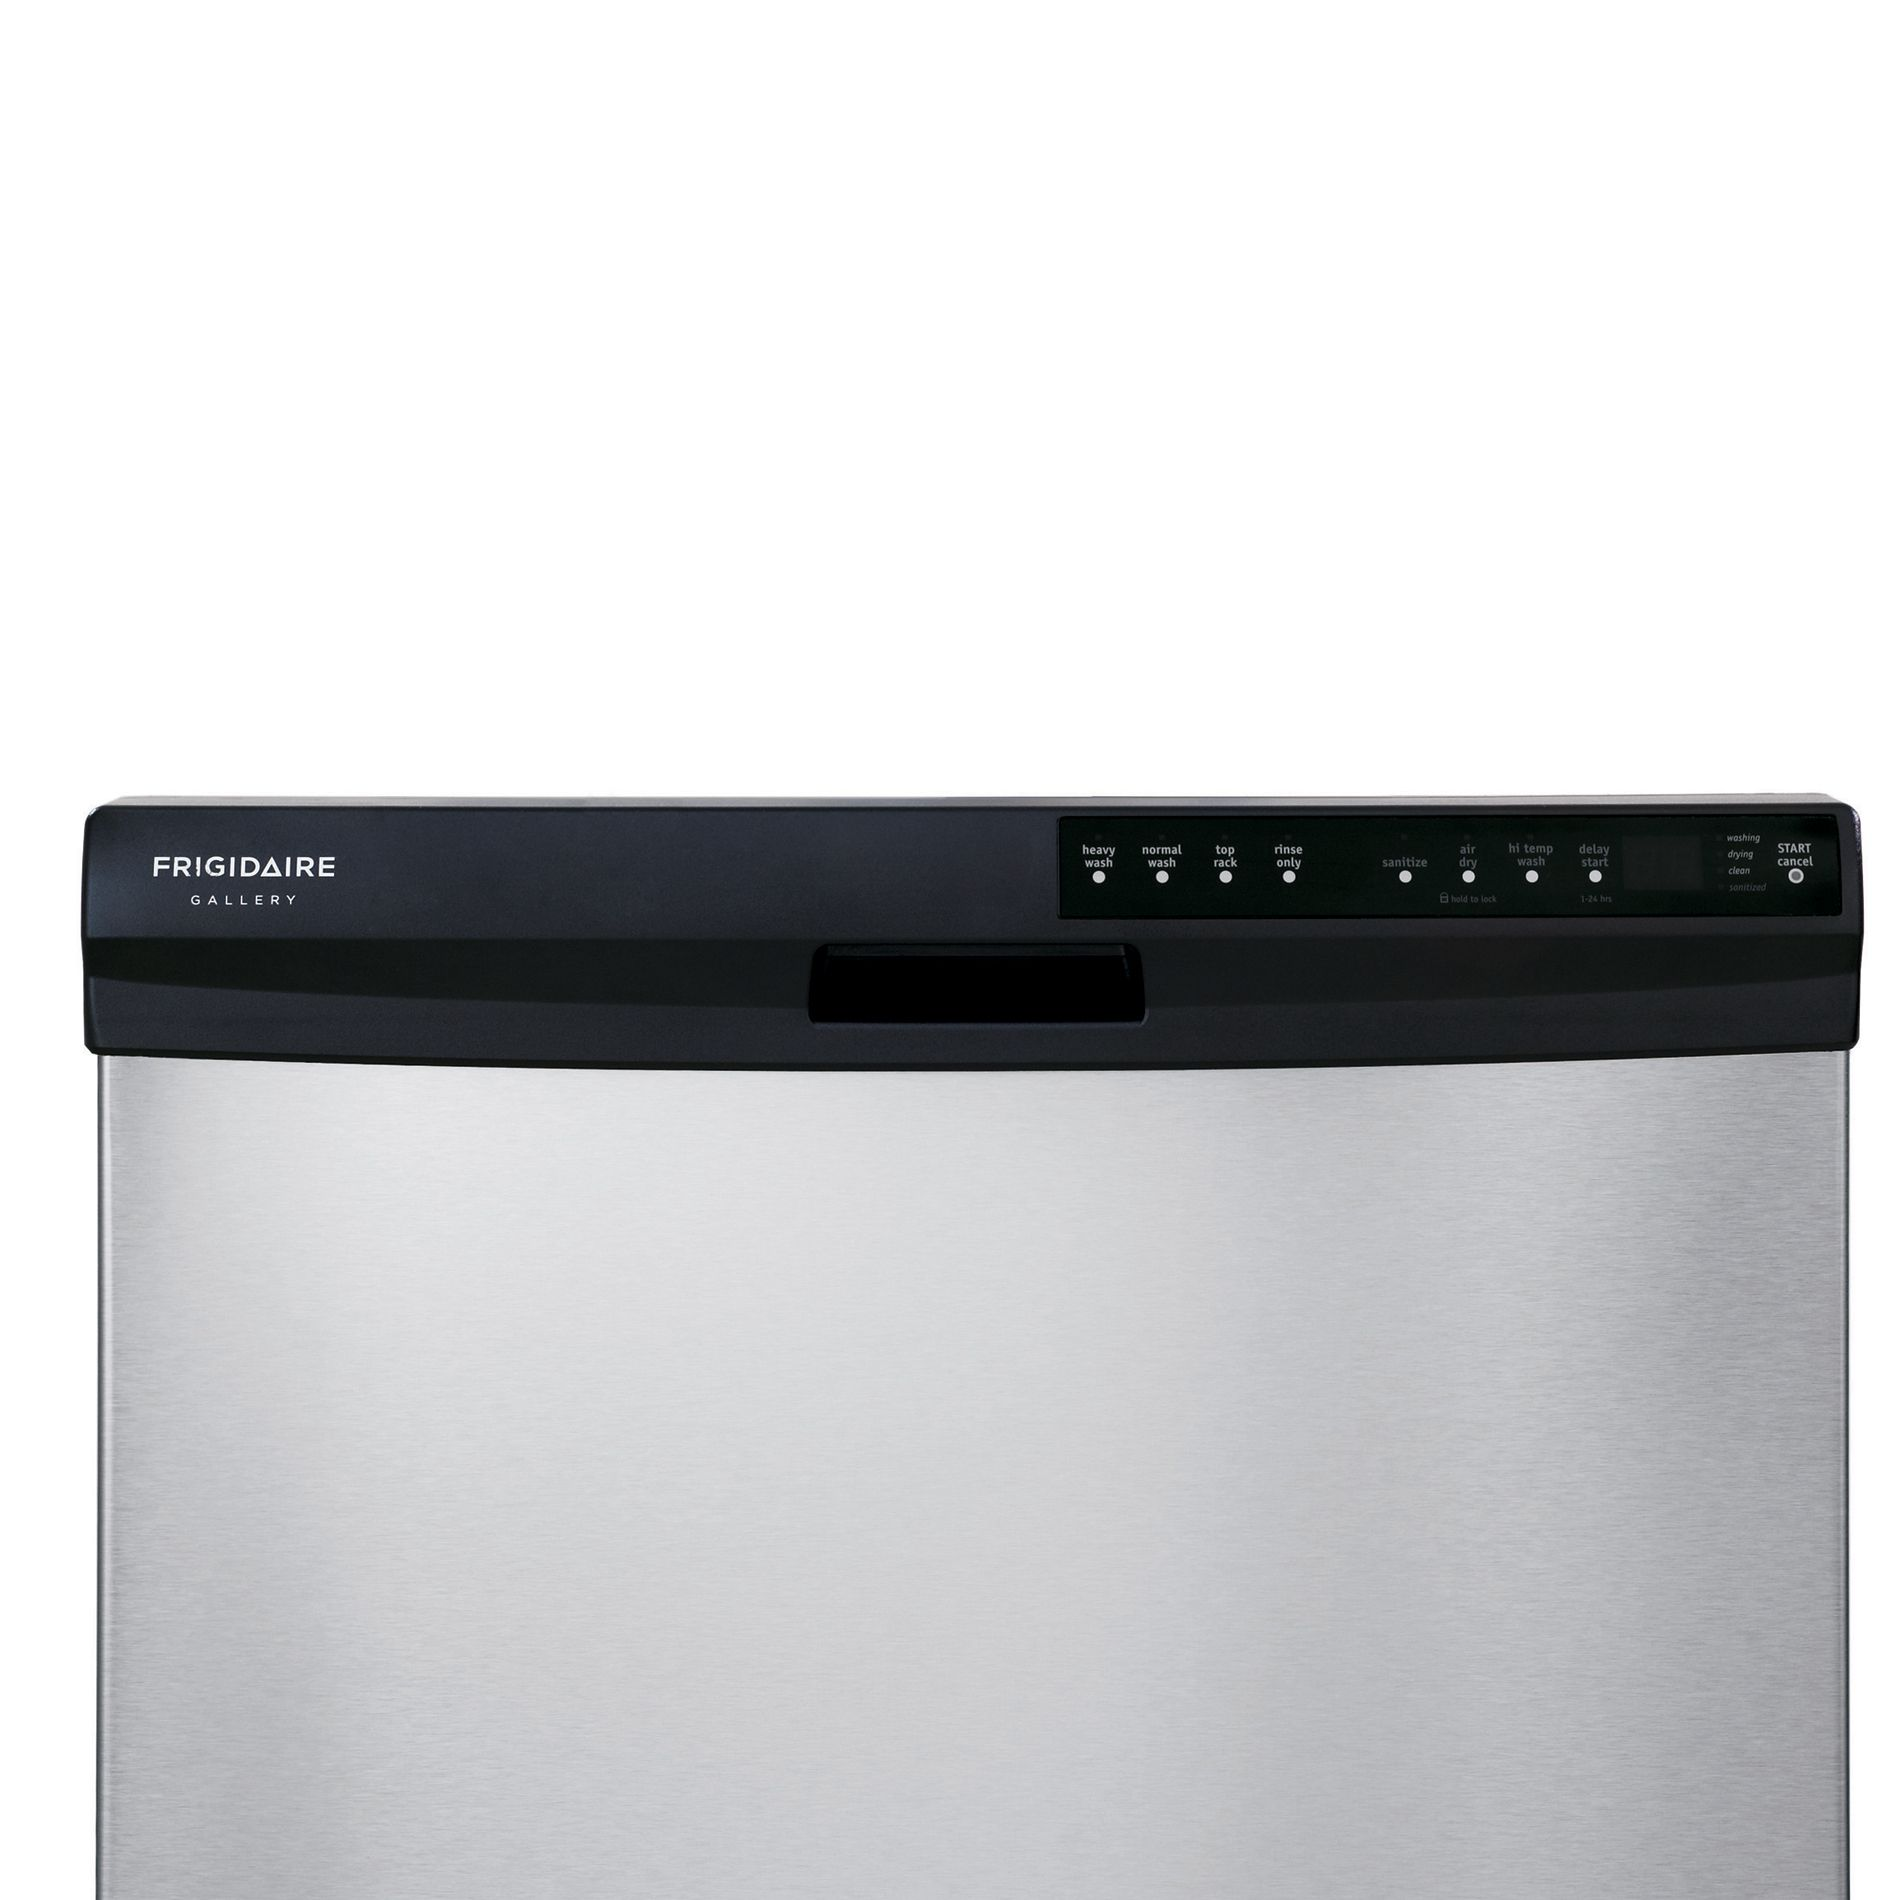 Frigidaire FGBD2445NF 24'' Built-In Dishwasher - Stainless Steel